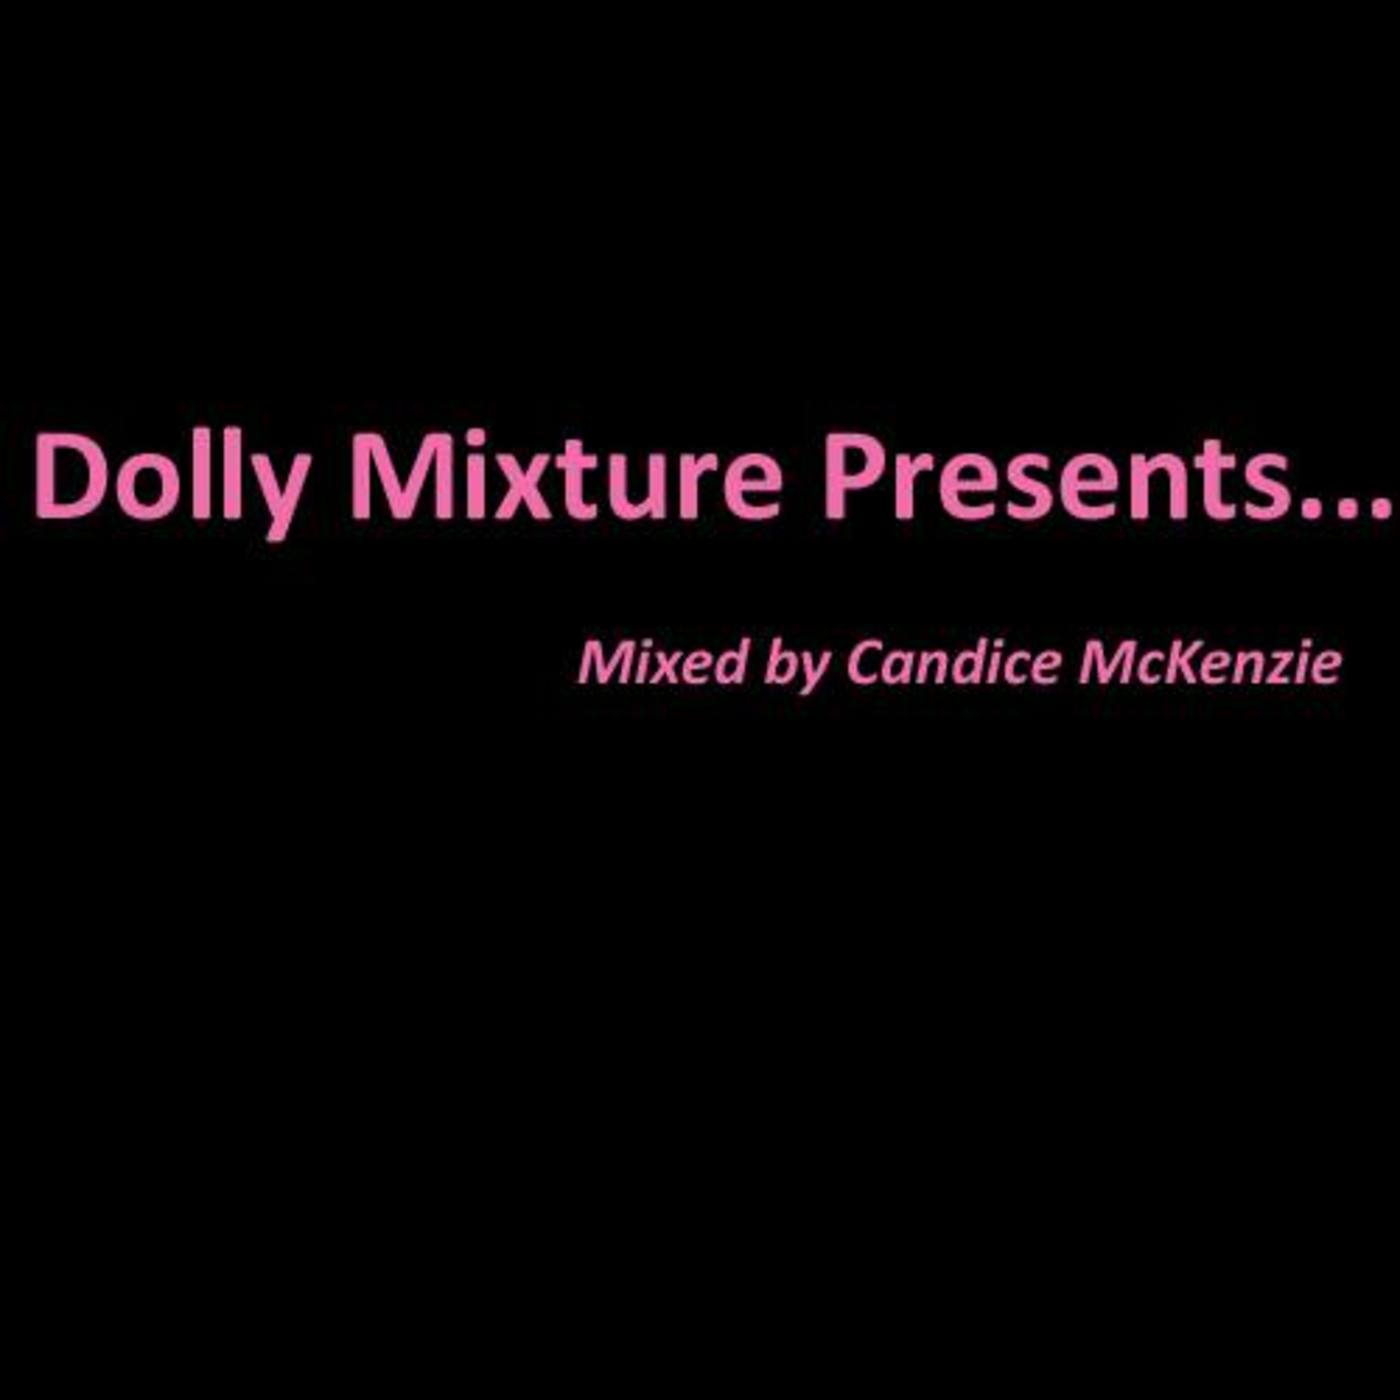 Dolly Mixture Presents... Mixed by Candice McKenzie